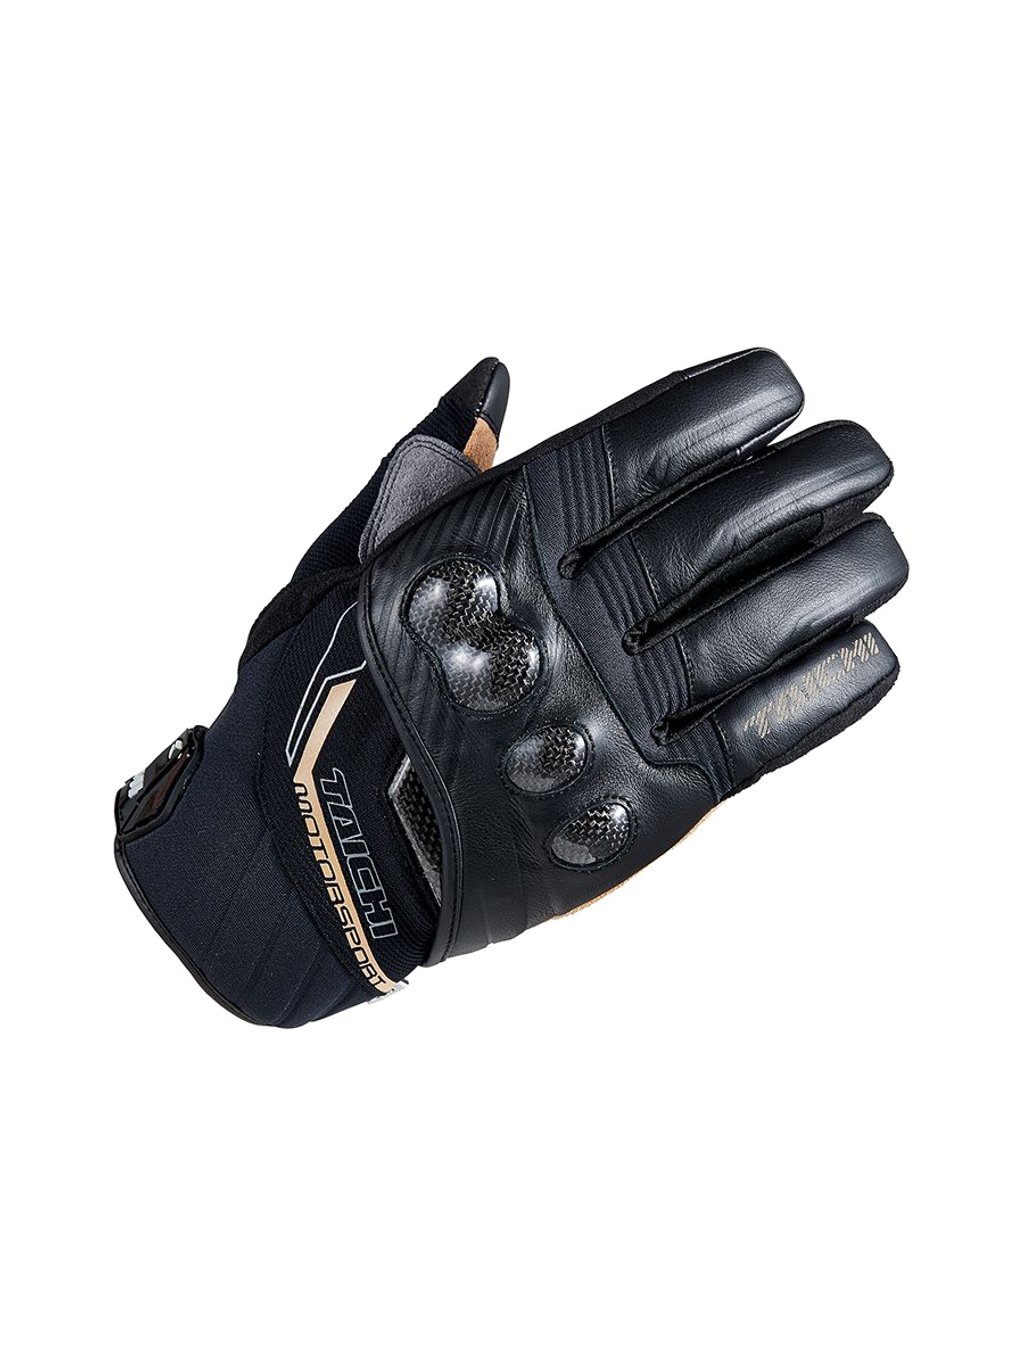 36 RS TAICHI RST636 CARBON WINTER GLOVE black gold.png